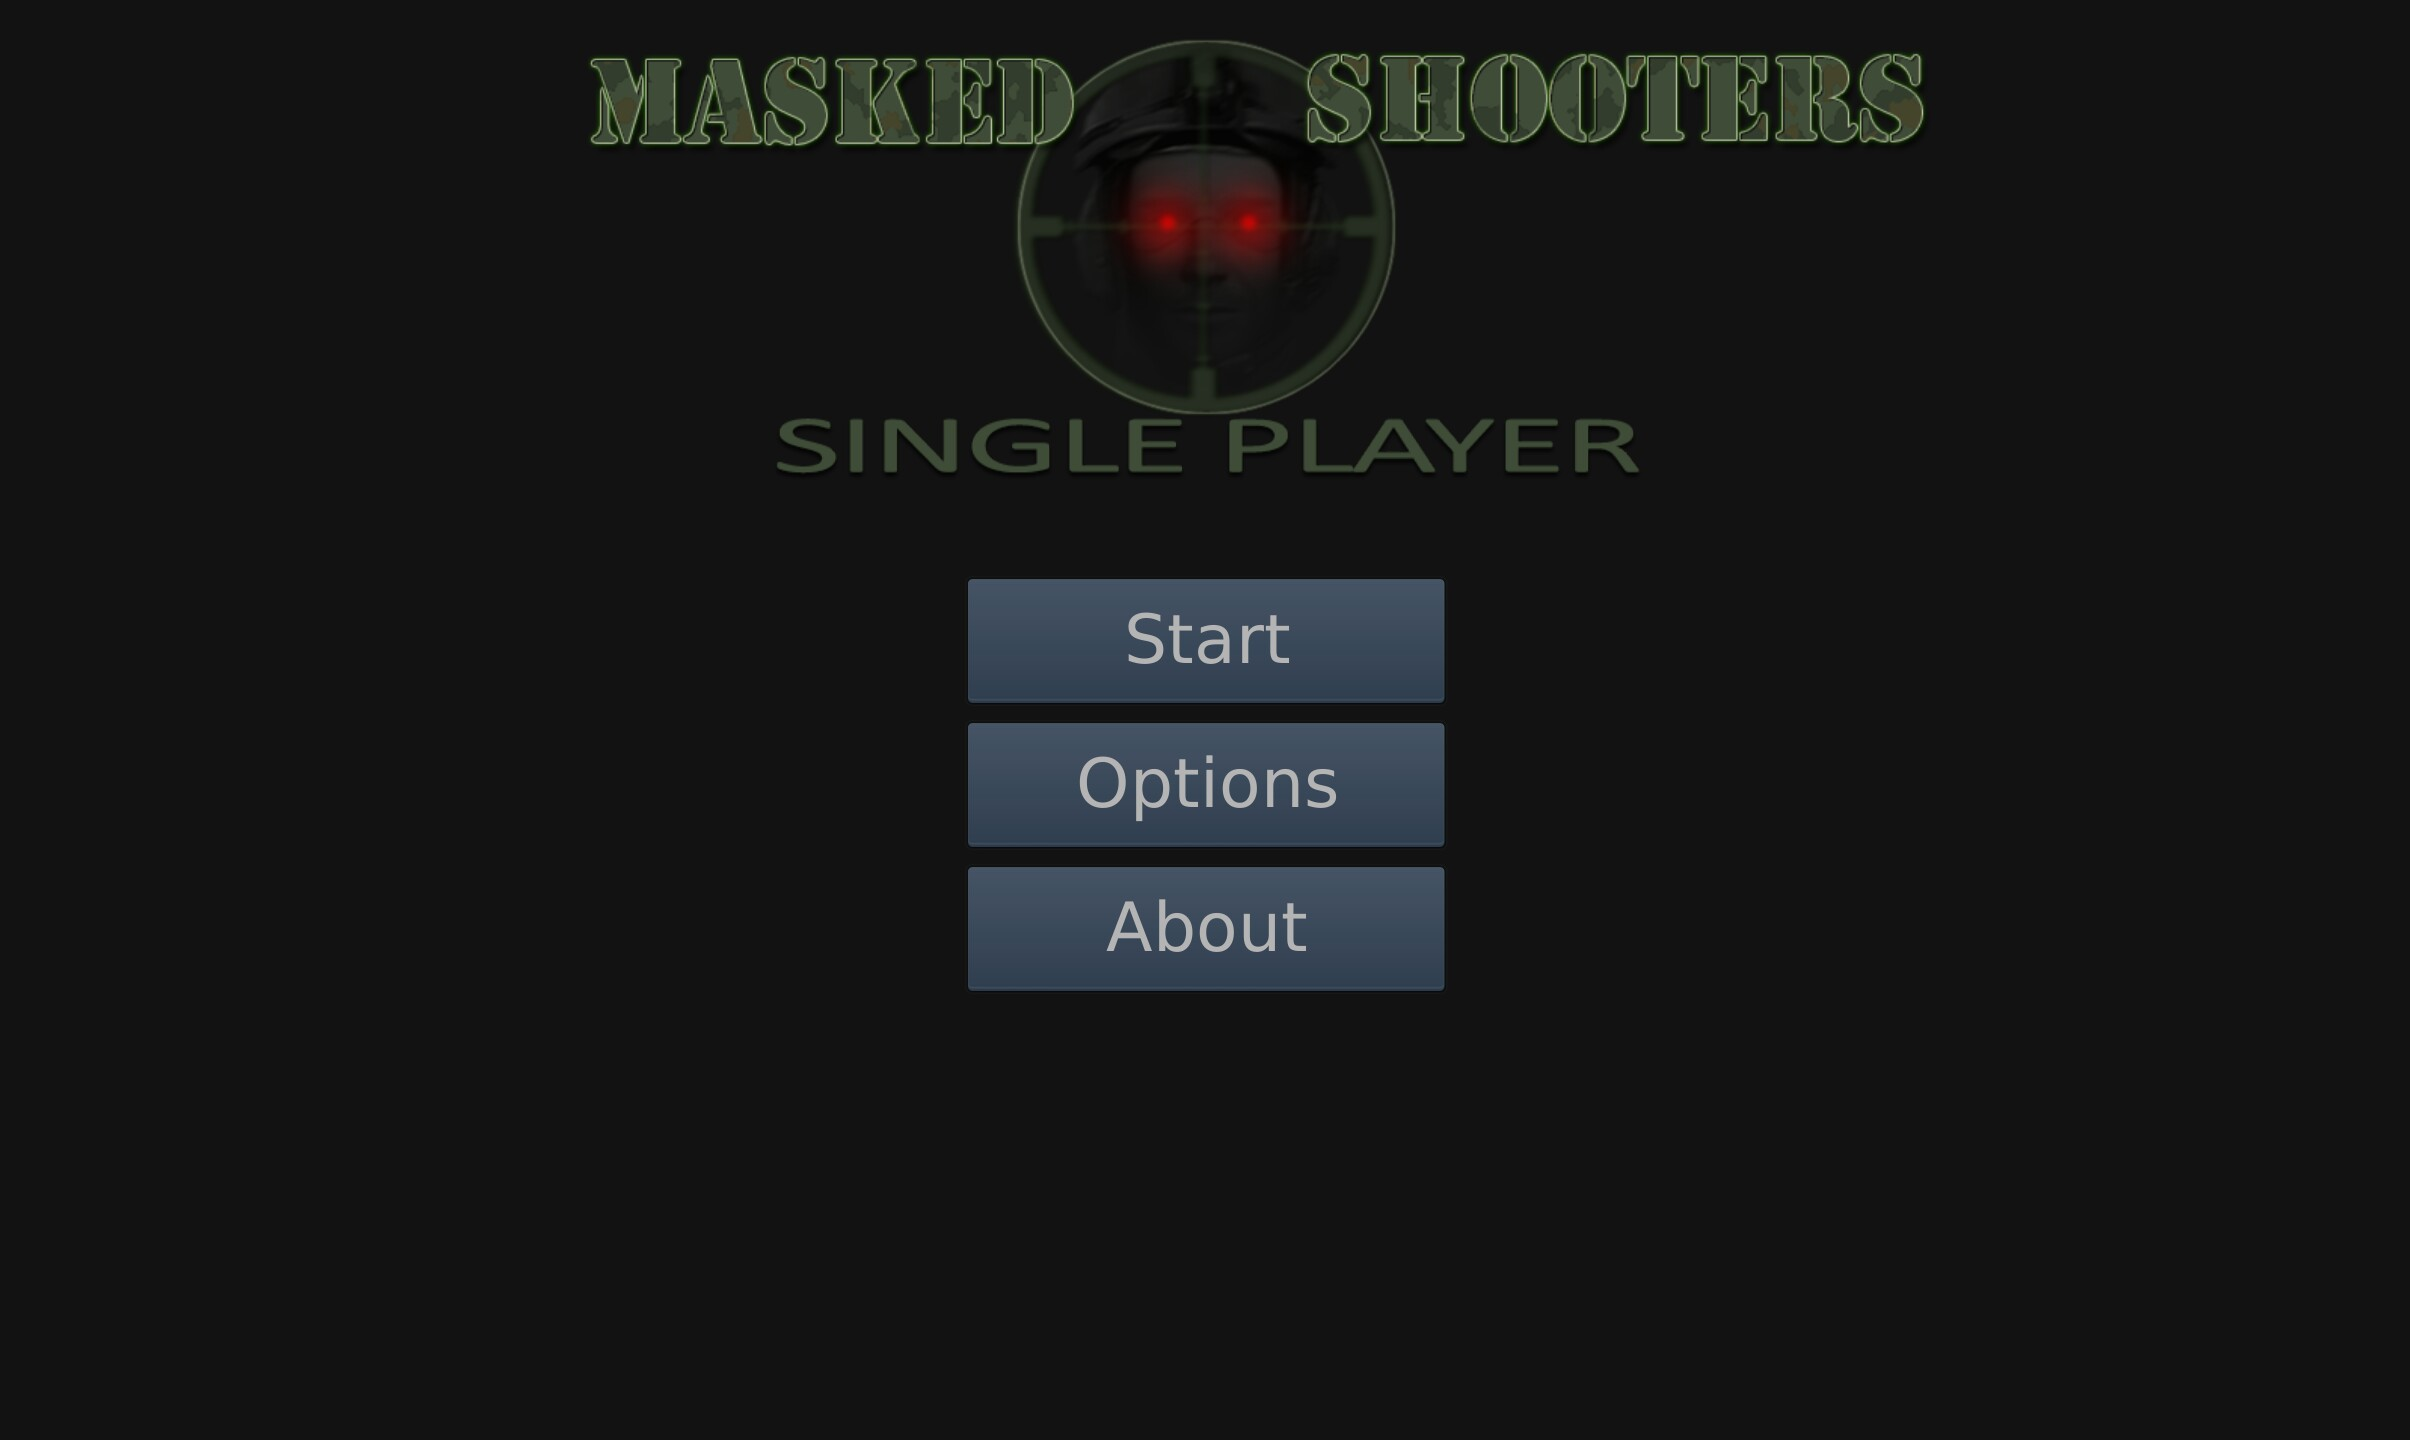 Masked Shooters screen